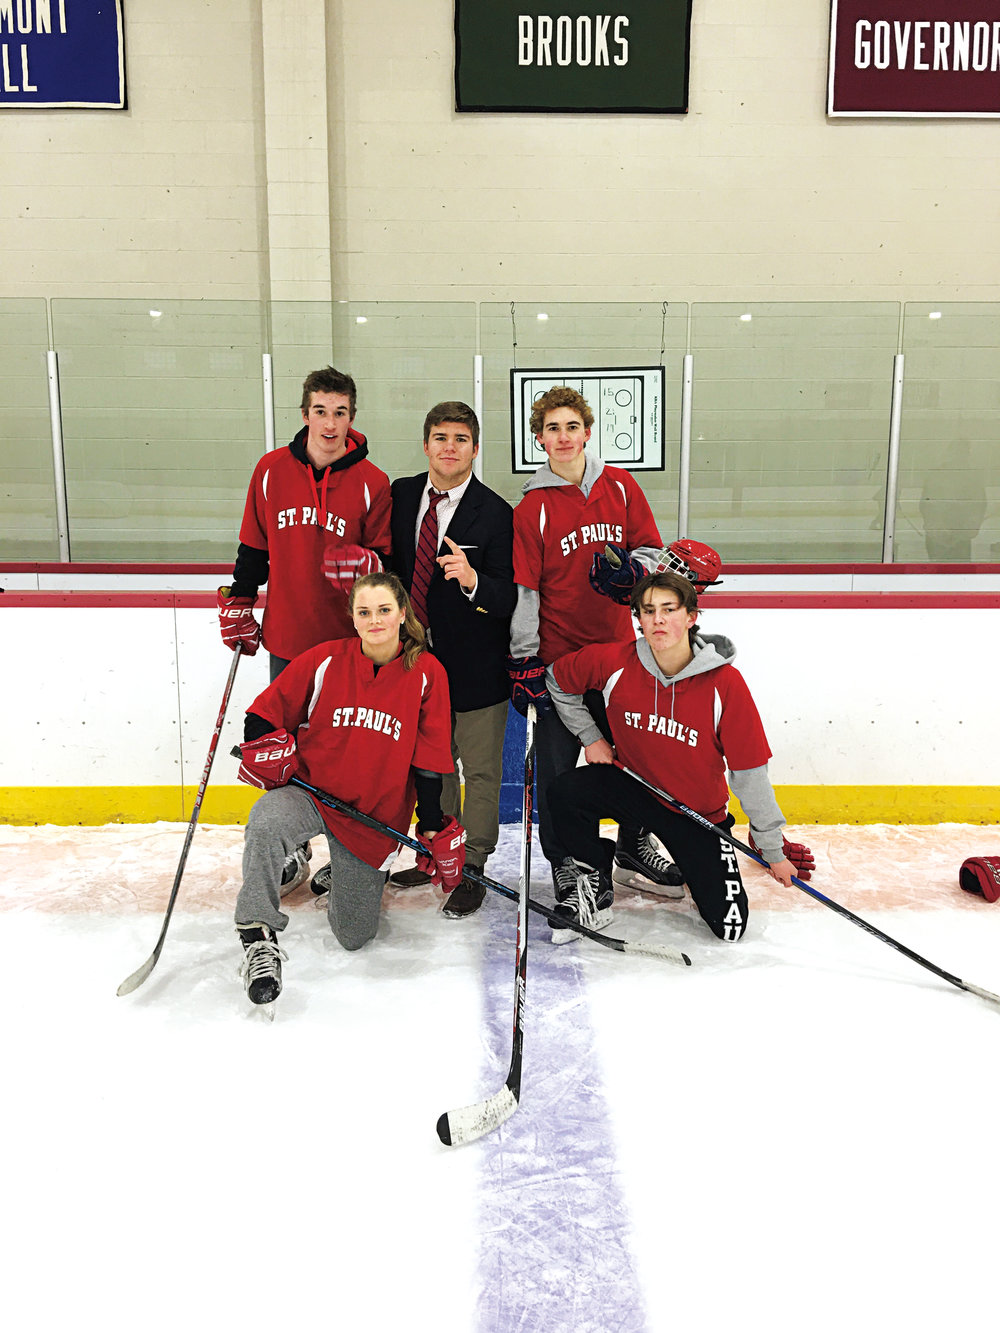 Lower School Classic winners (back, l. to r.) Jake Demers '18, Oliver Morton '18, Ben Leach '18; (kneeling, l. to r.) Gillis Frechette '18 and Sam Born '18.